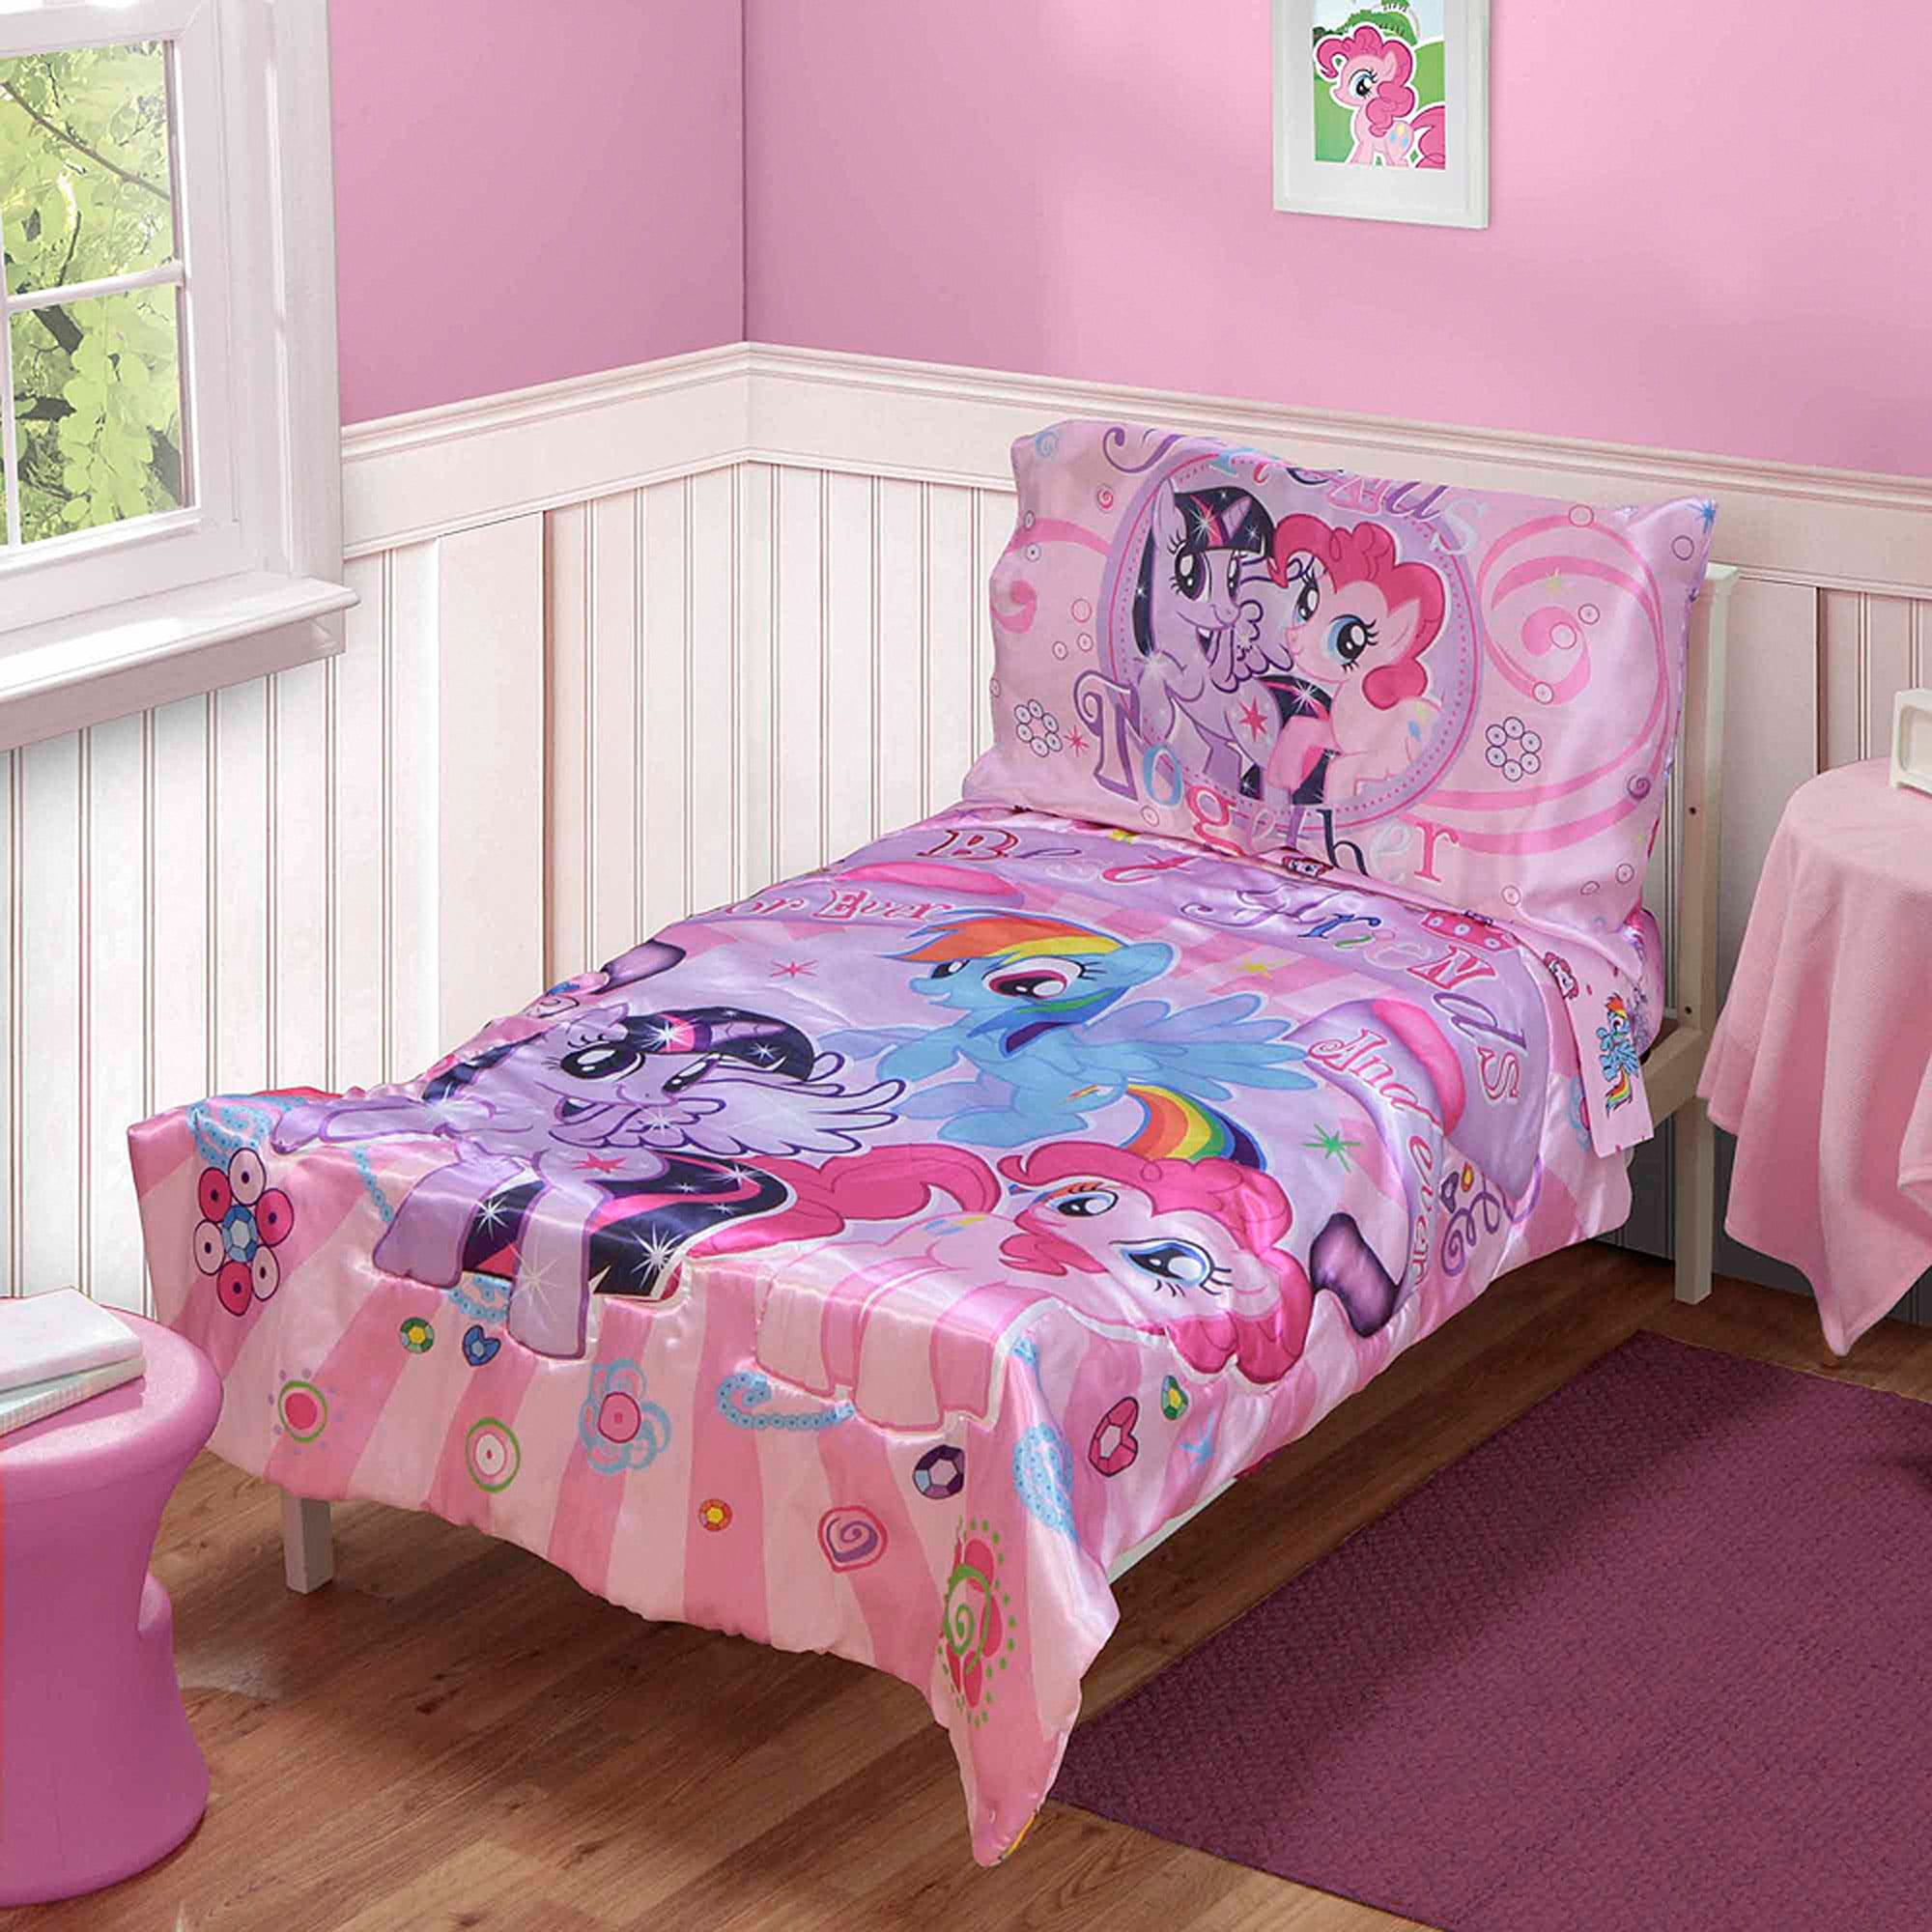 merlot for bedroom kfs girl sets color beds toddler kid kids psychology stores room furniture